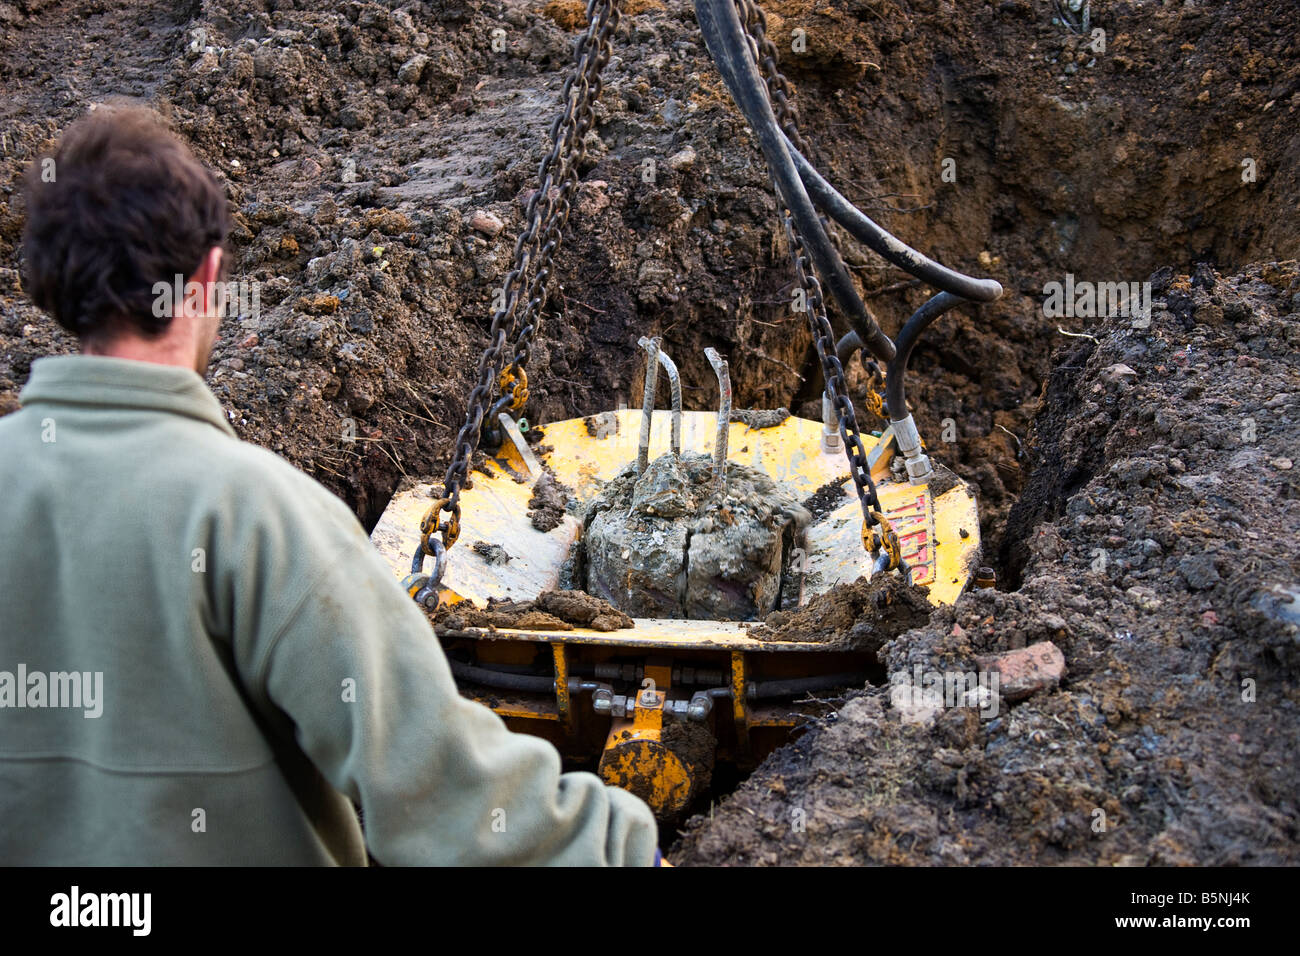 A pile crusher in place, slowly crushing the concrete before it can be removed. - Stock Image